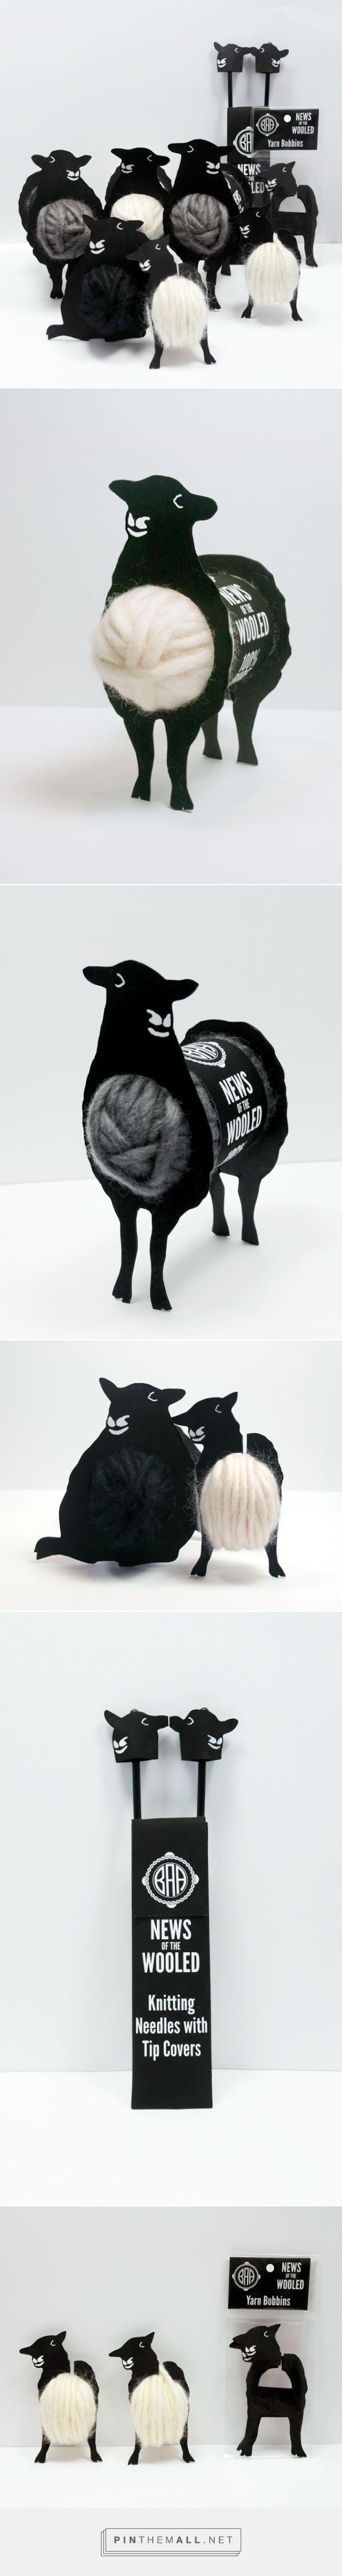 So cute!!! News Of The Wooled Introduction To Knitting. Now everyone will want to learn!